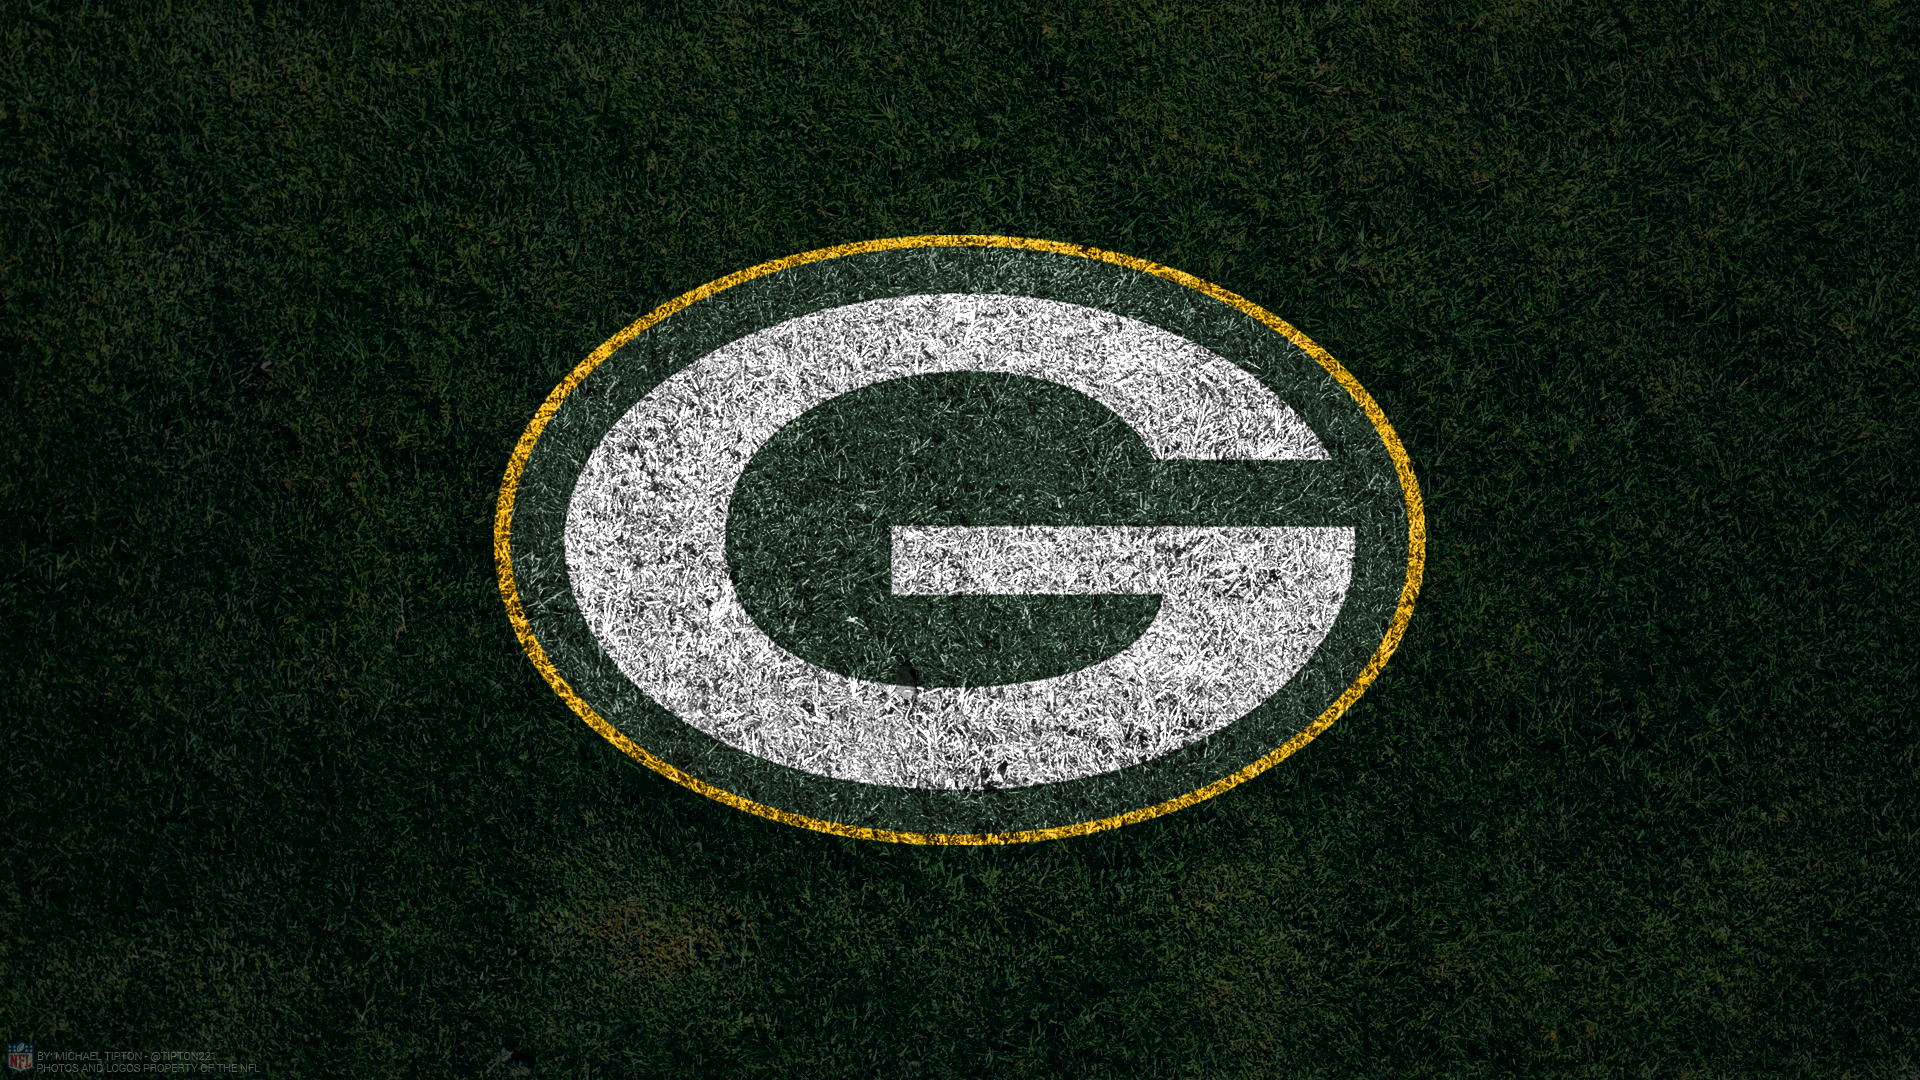 Green Bay Packers HD Wallpaper | Background Image | 1920x1080 | ID:981378 - Wallpaper Abyss